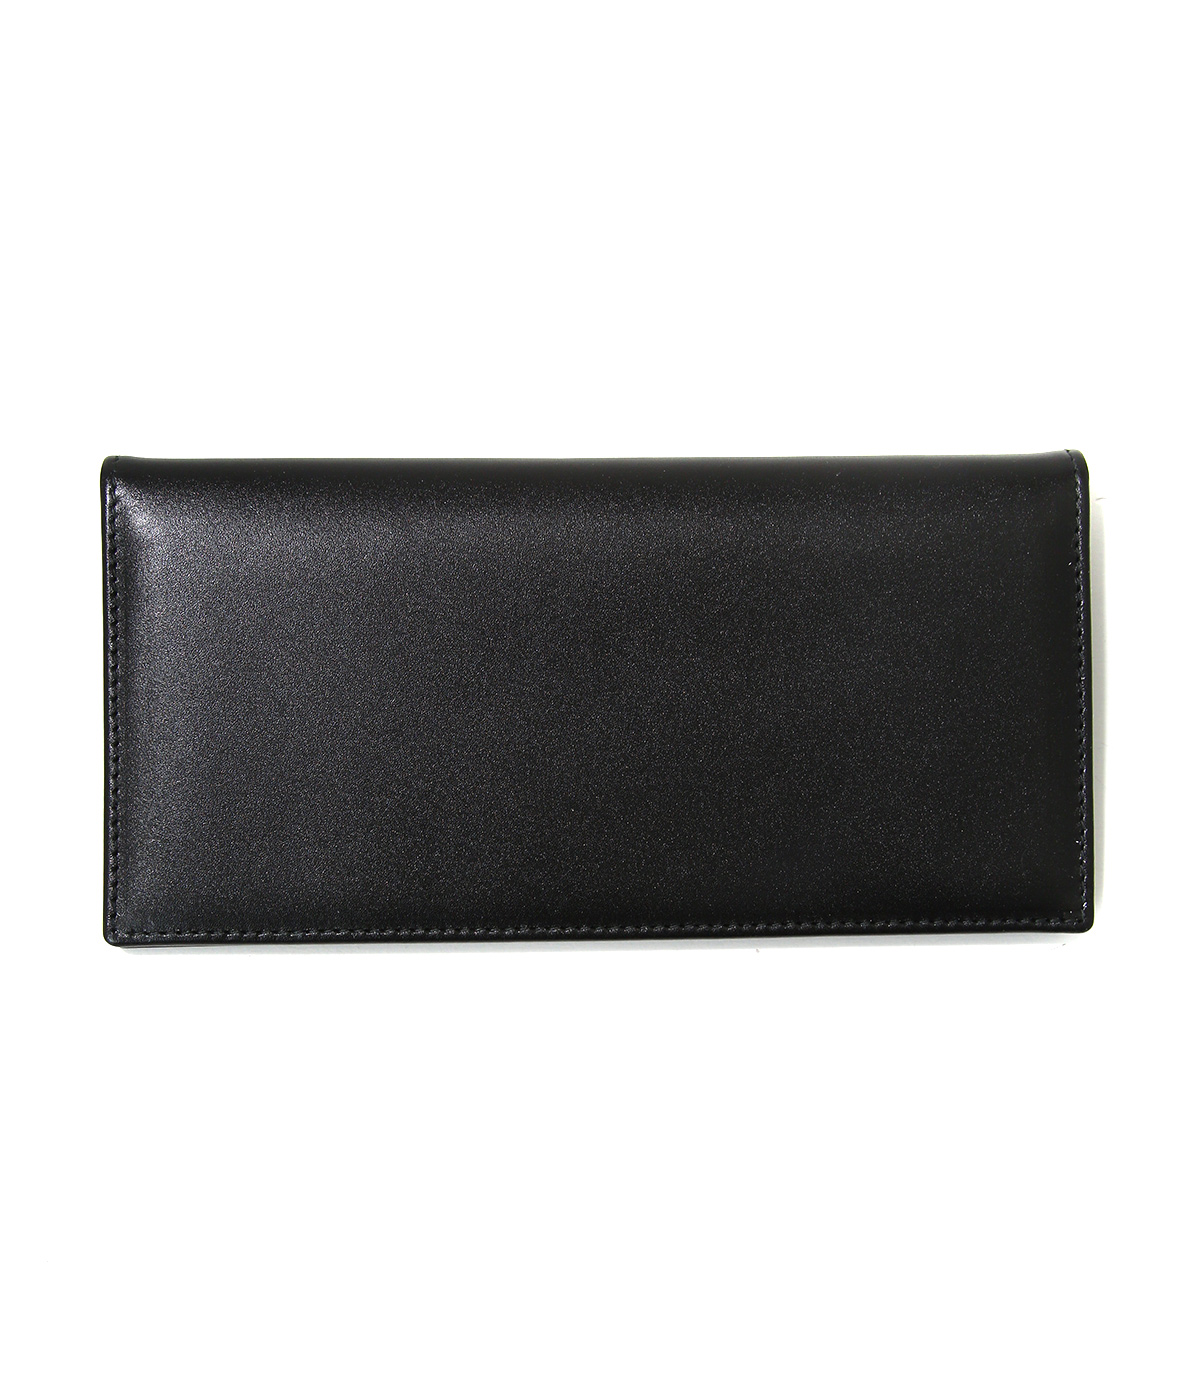 LONG WALLET WITH ZIP BLK/PPL